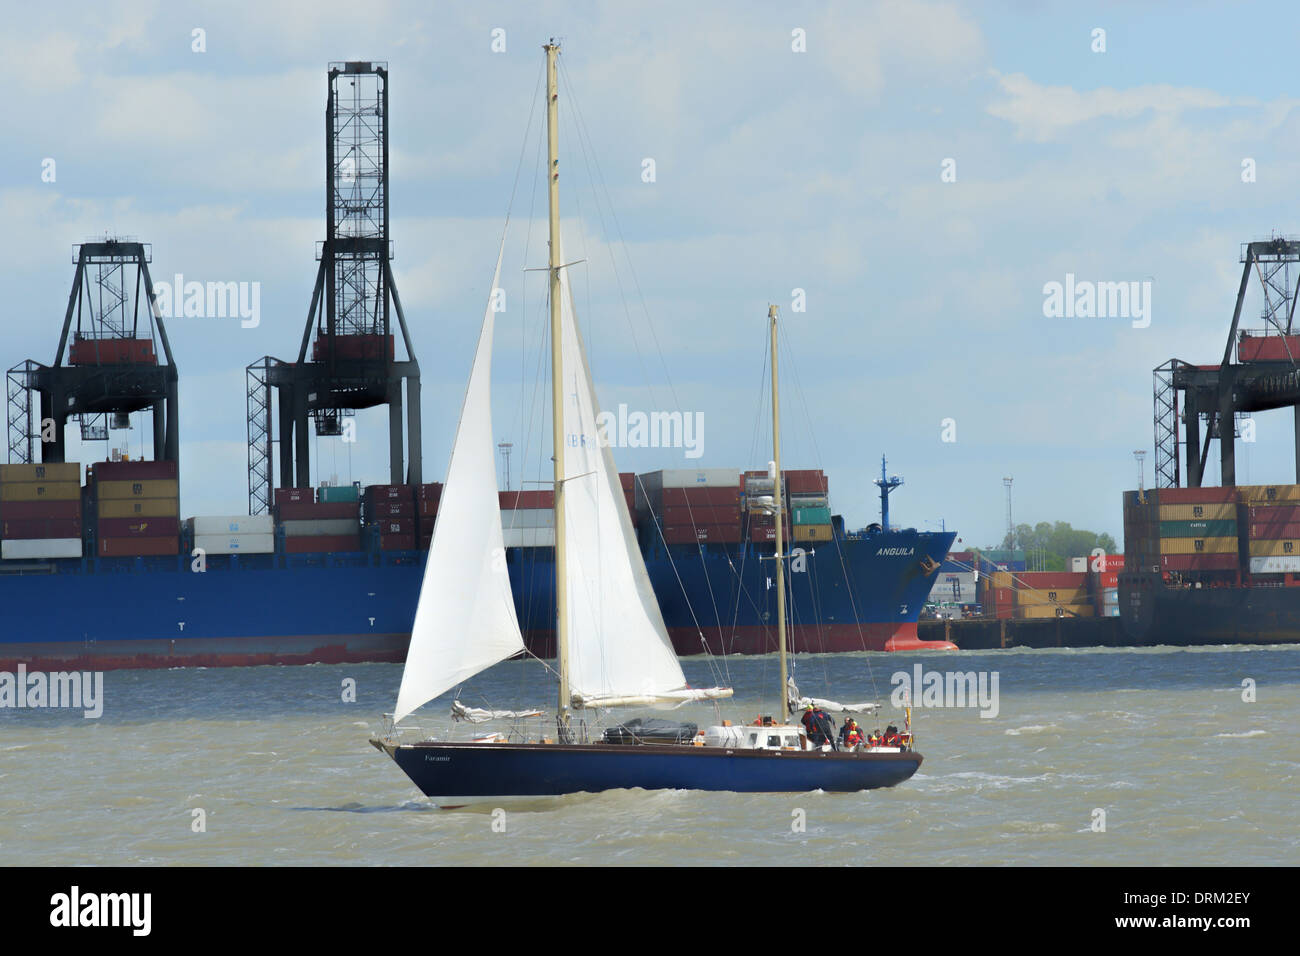 22.4m ketch Faramir in Harwich harbour, Harwich, Essex UK with container ship anguila in the background. - Stock Image